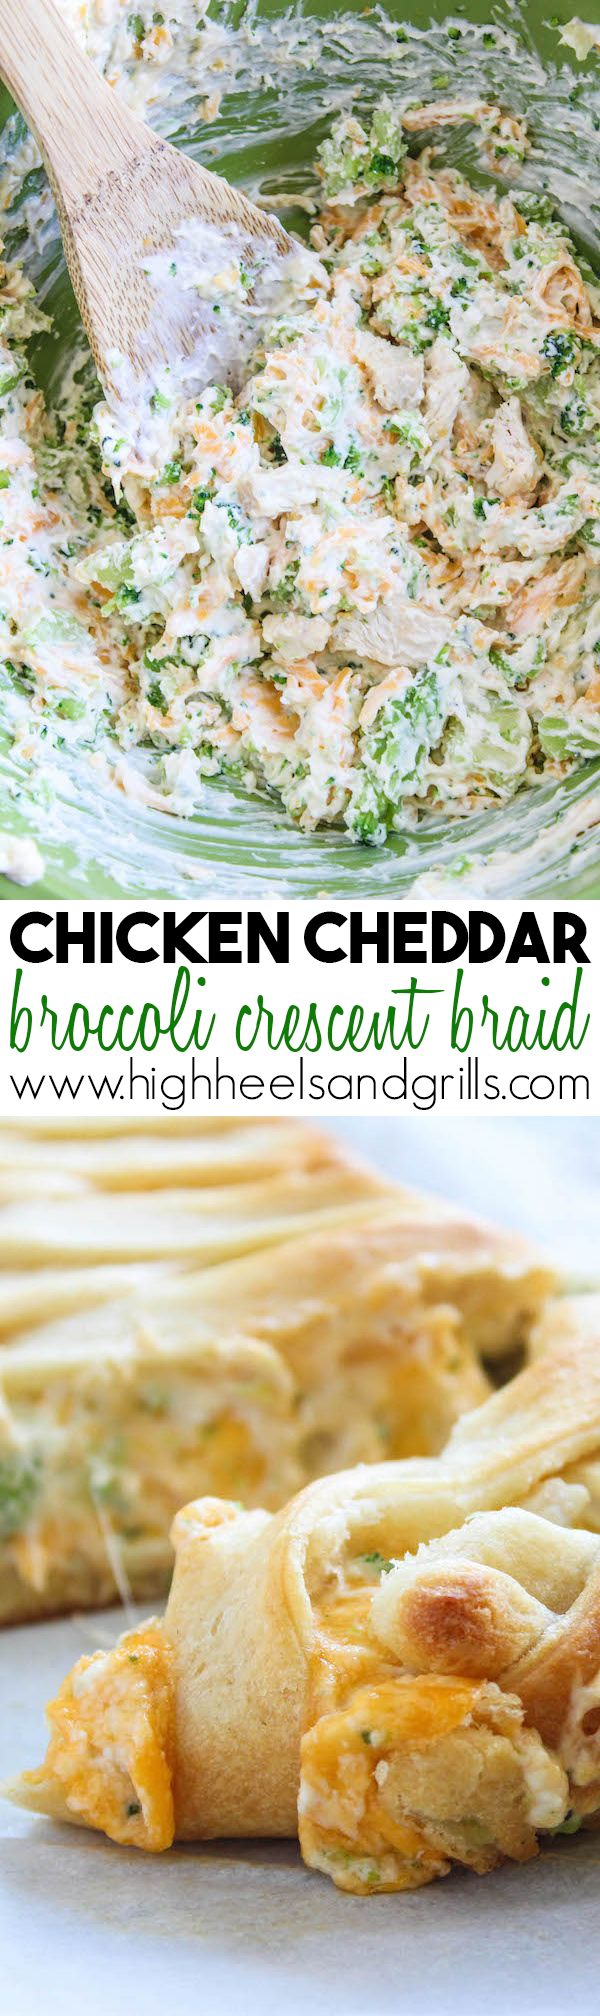 Chicken Cheddar Broccoli Crescent Braid - Cream cheese, chicken, cheddar, and broccoli stuffed into a beautiful crescent braid. {Which looks more intimidating than it really is} This is a dinner favorite for sure!